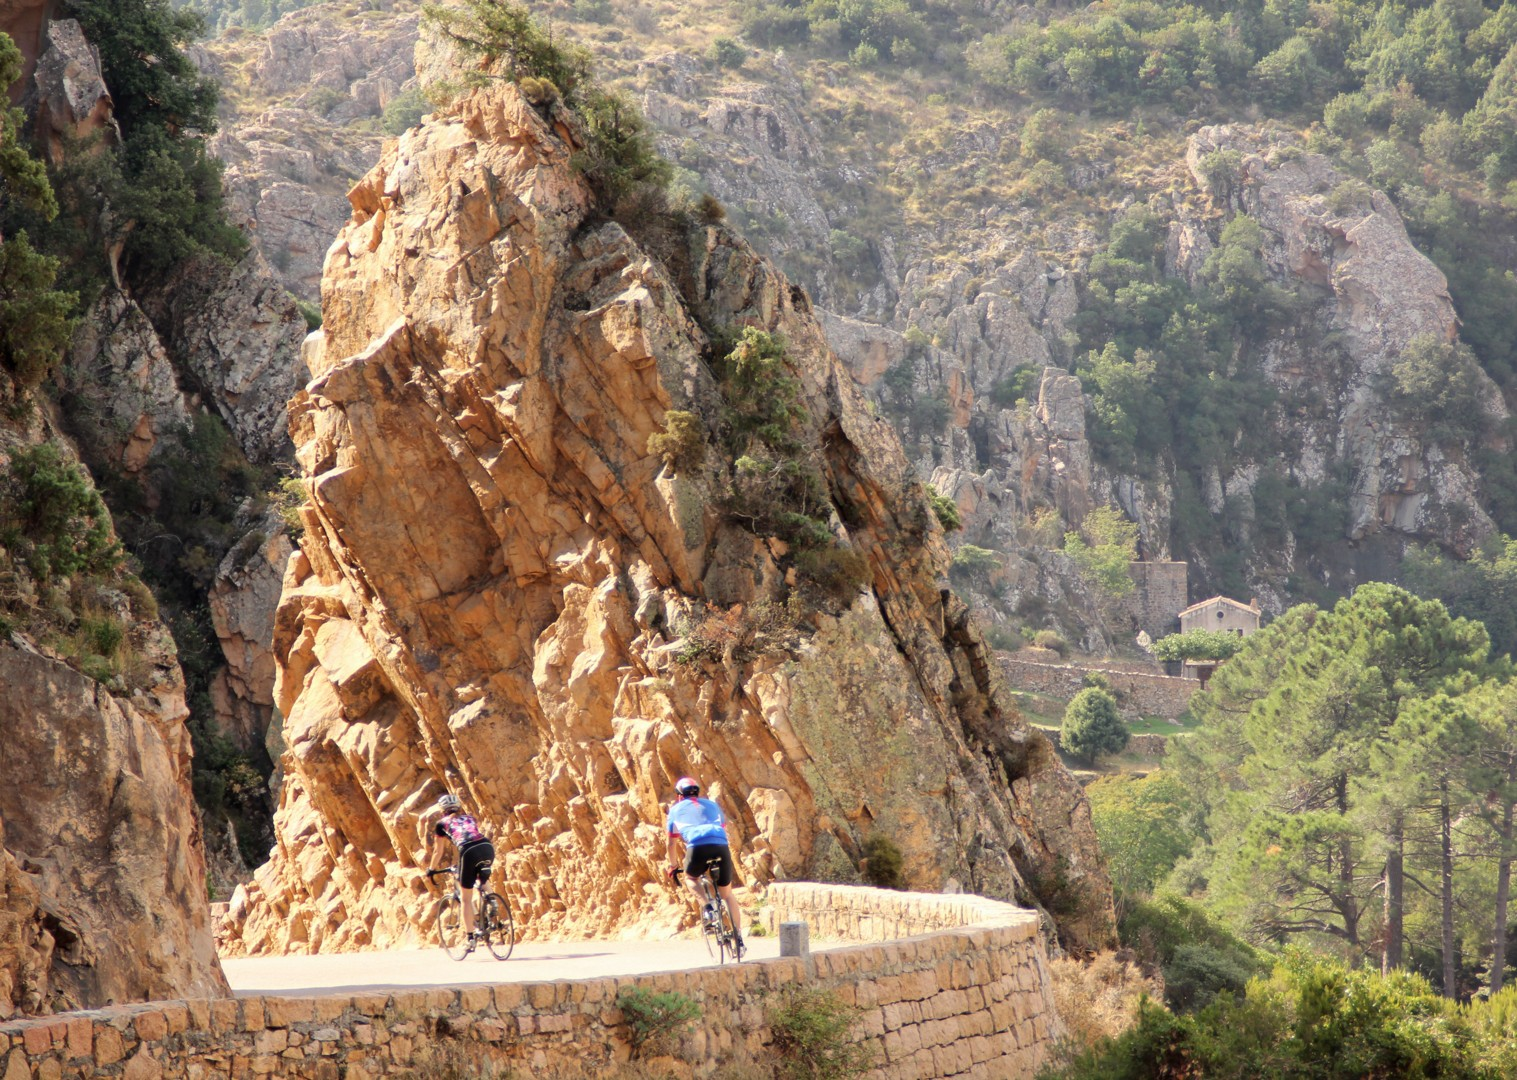 corsica-guided-road-cycling-holiday-the-beautiful-isle-mountain-riding.JPG - France - Corsica - The Beautiful Isle - Guided Road Cycling Holiday - Road Cycling